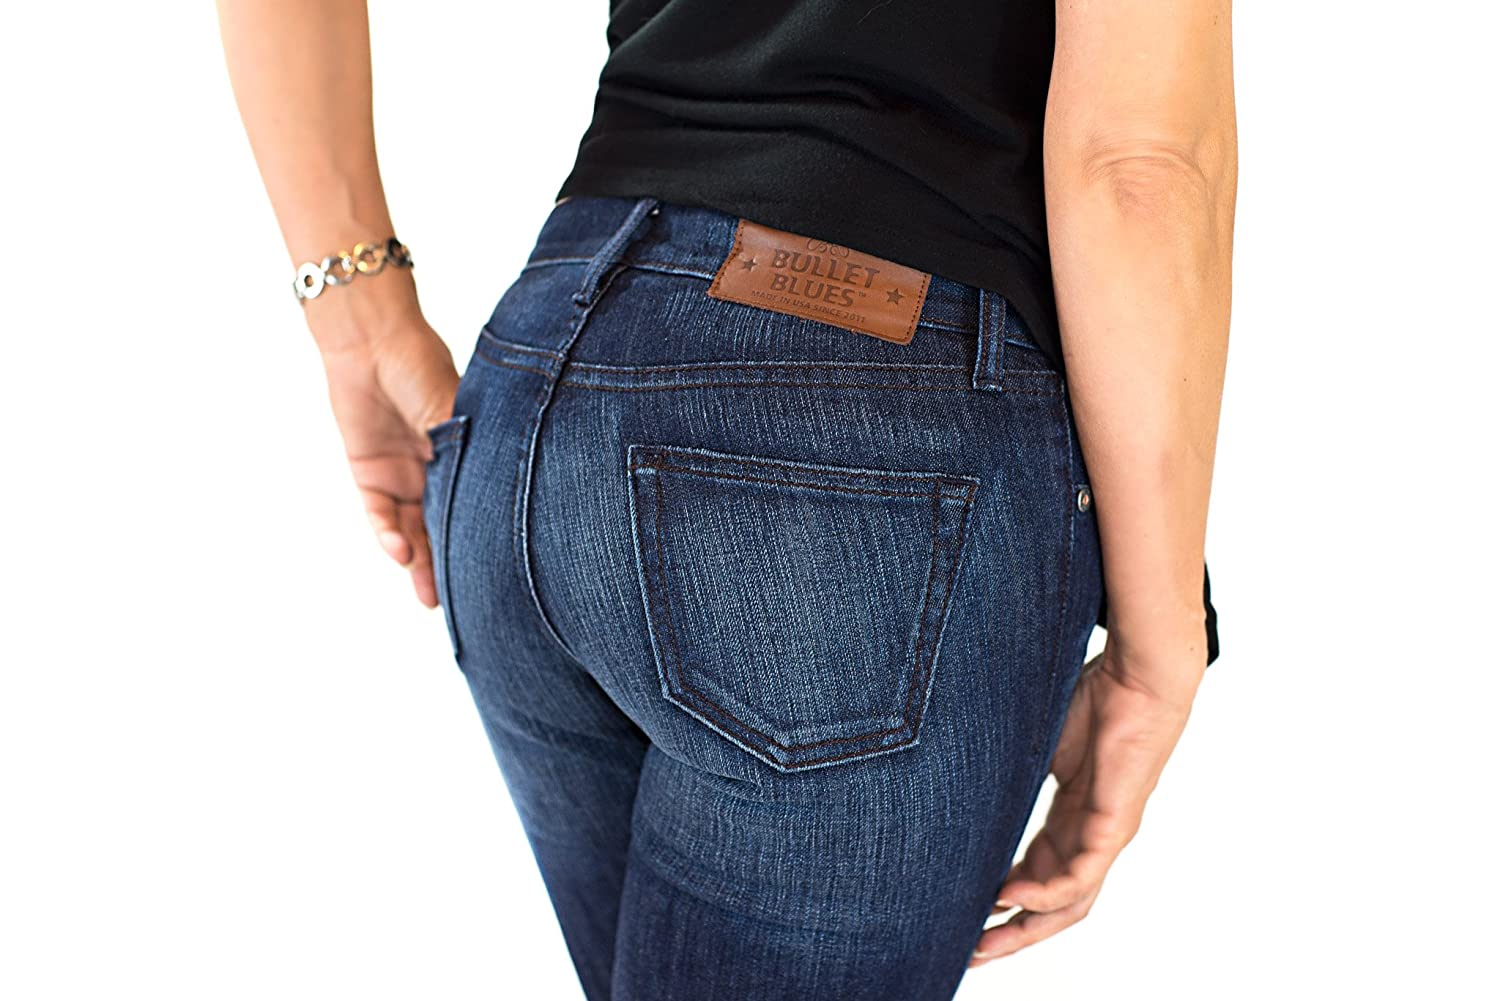 New Bullet Blues Fox Women's Skinny Jeans Made in the USA